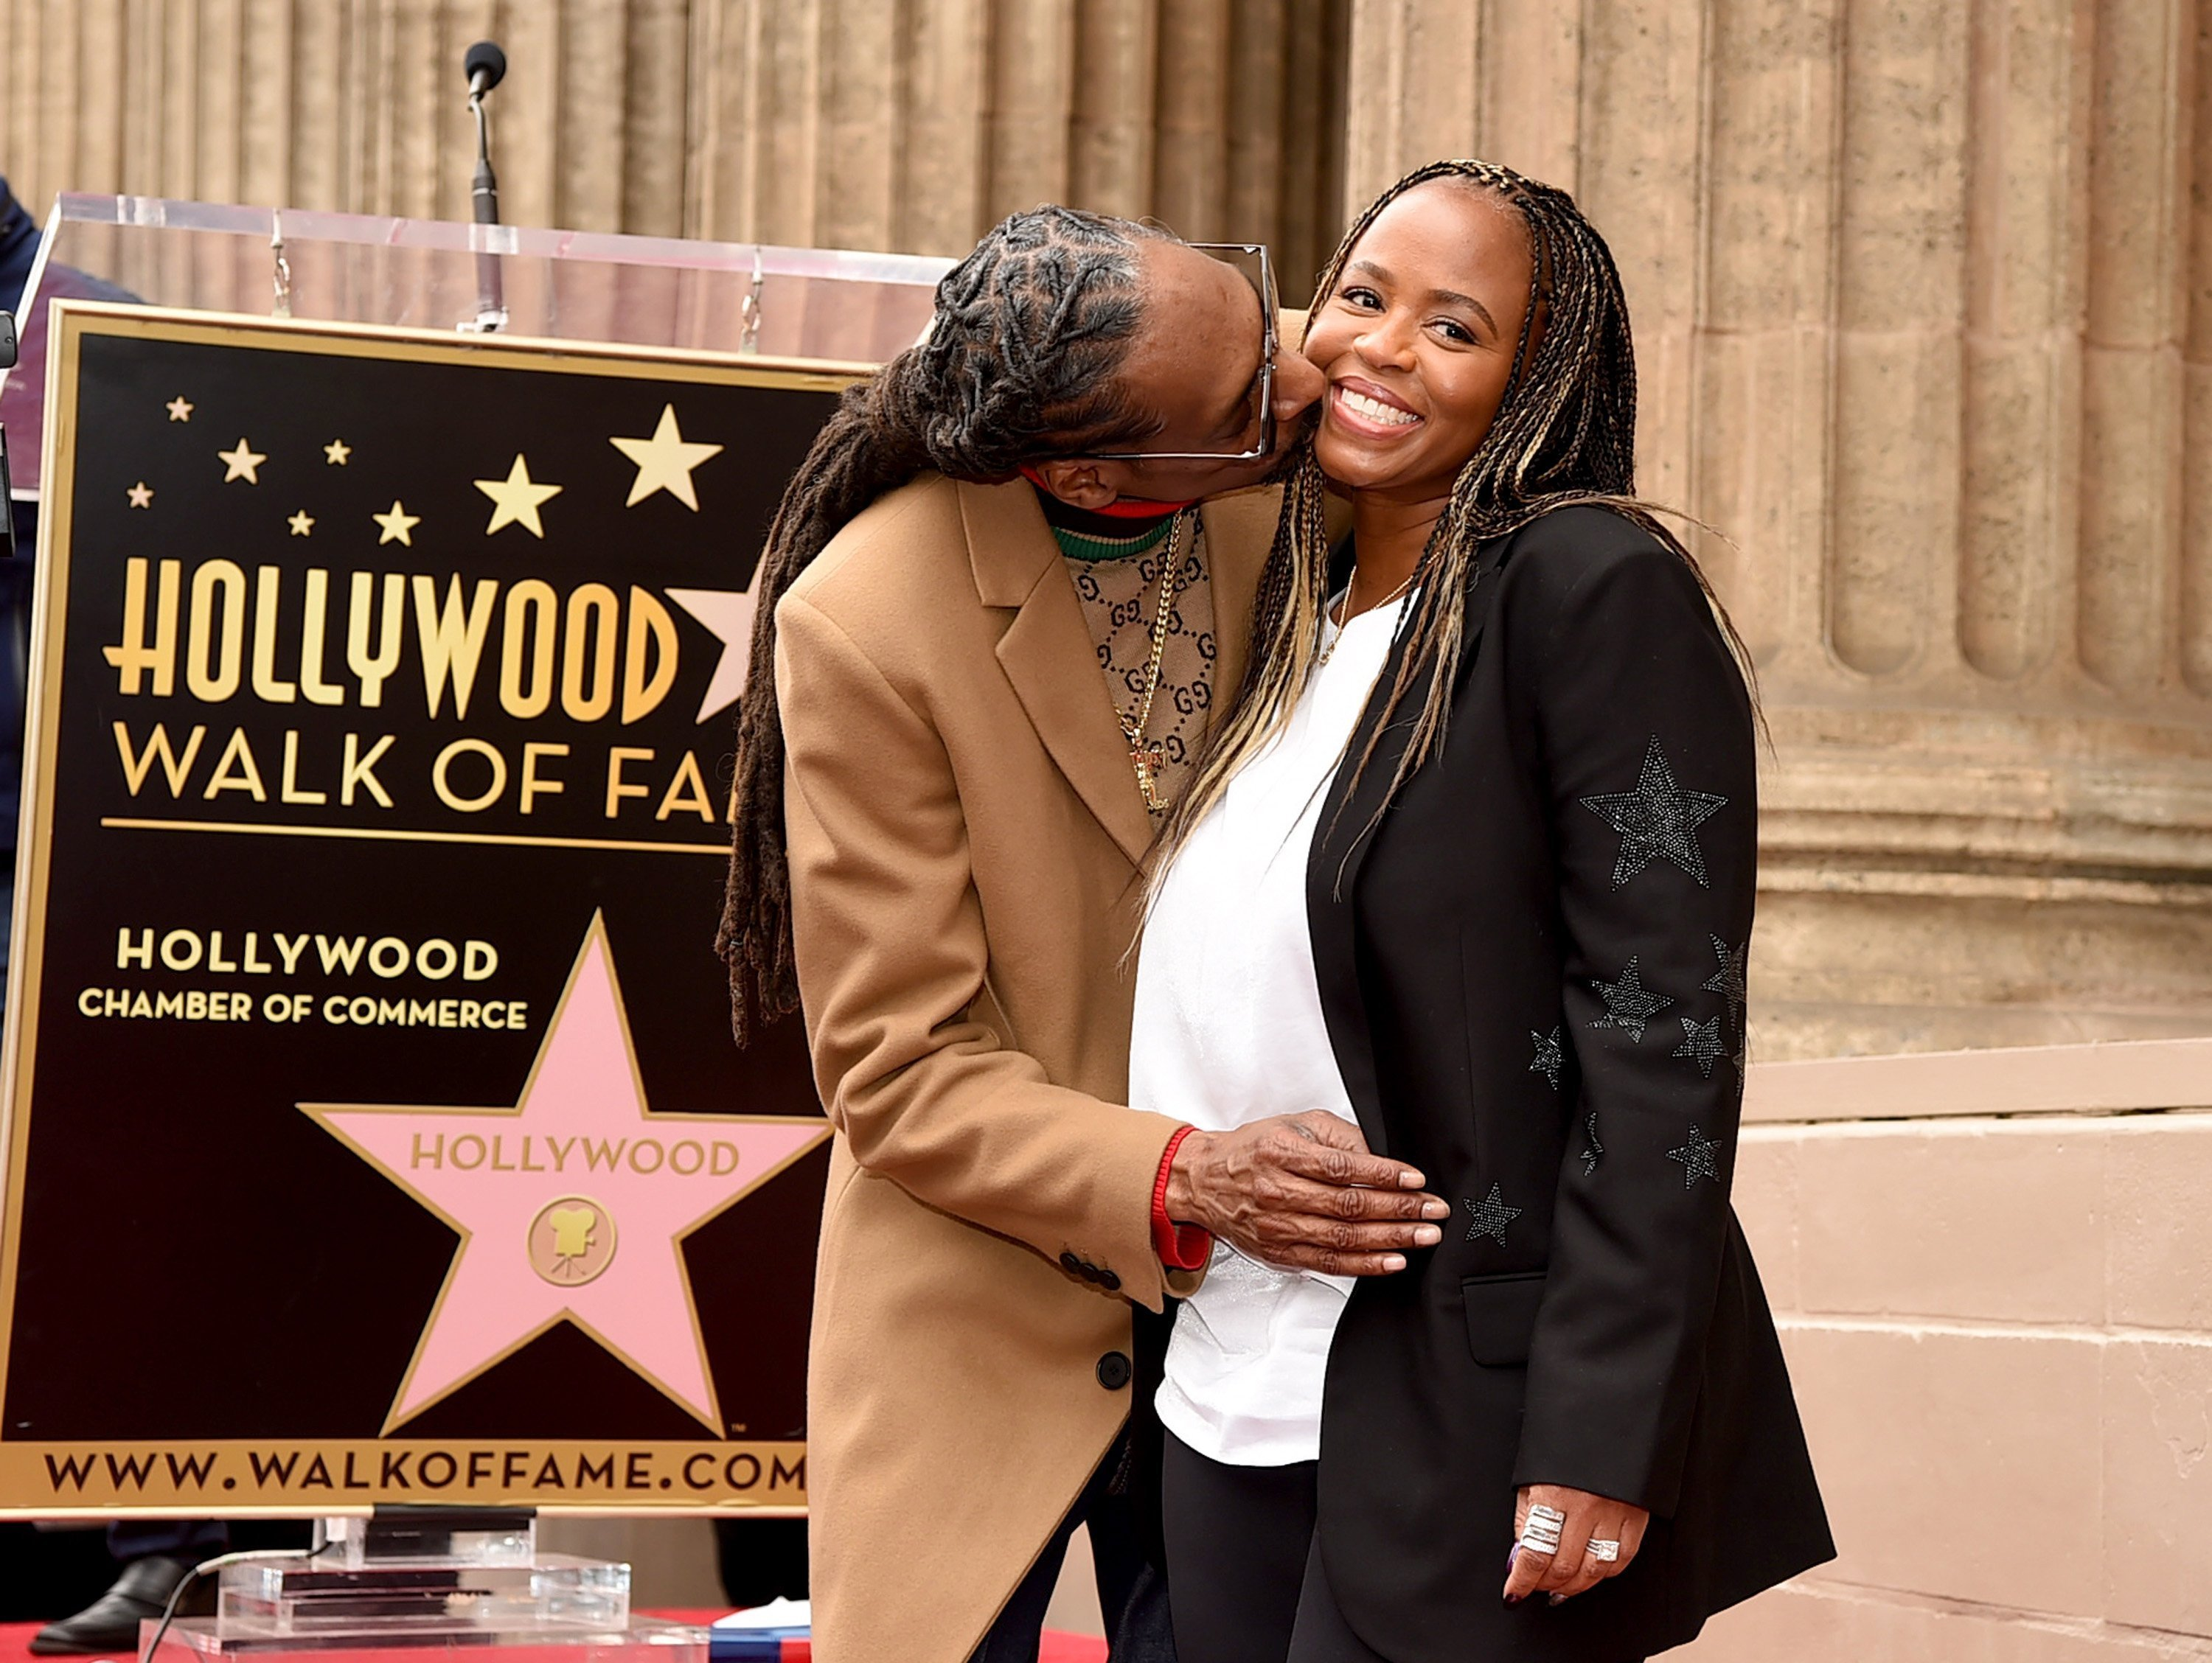 Snoop Dogg, with his wife Shante Broadus, is honored with a star on The Hollywood Walk Of Fame on Hollywood Boulevard on November 19, 2018. | Source: Getty Images